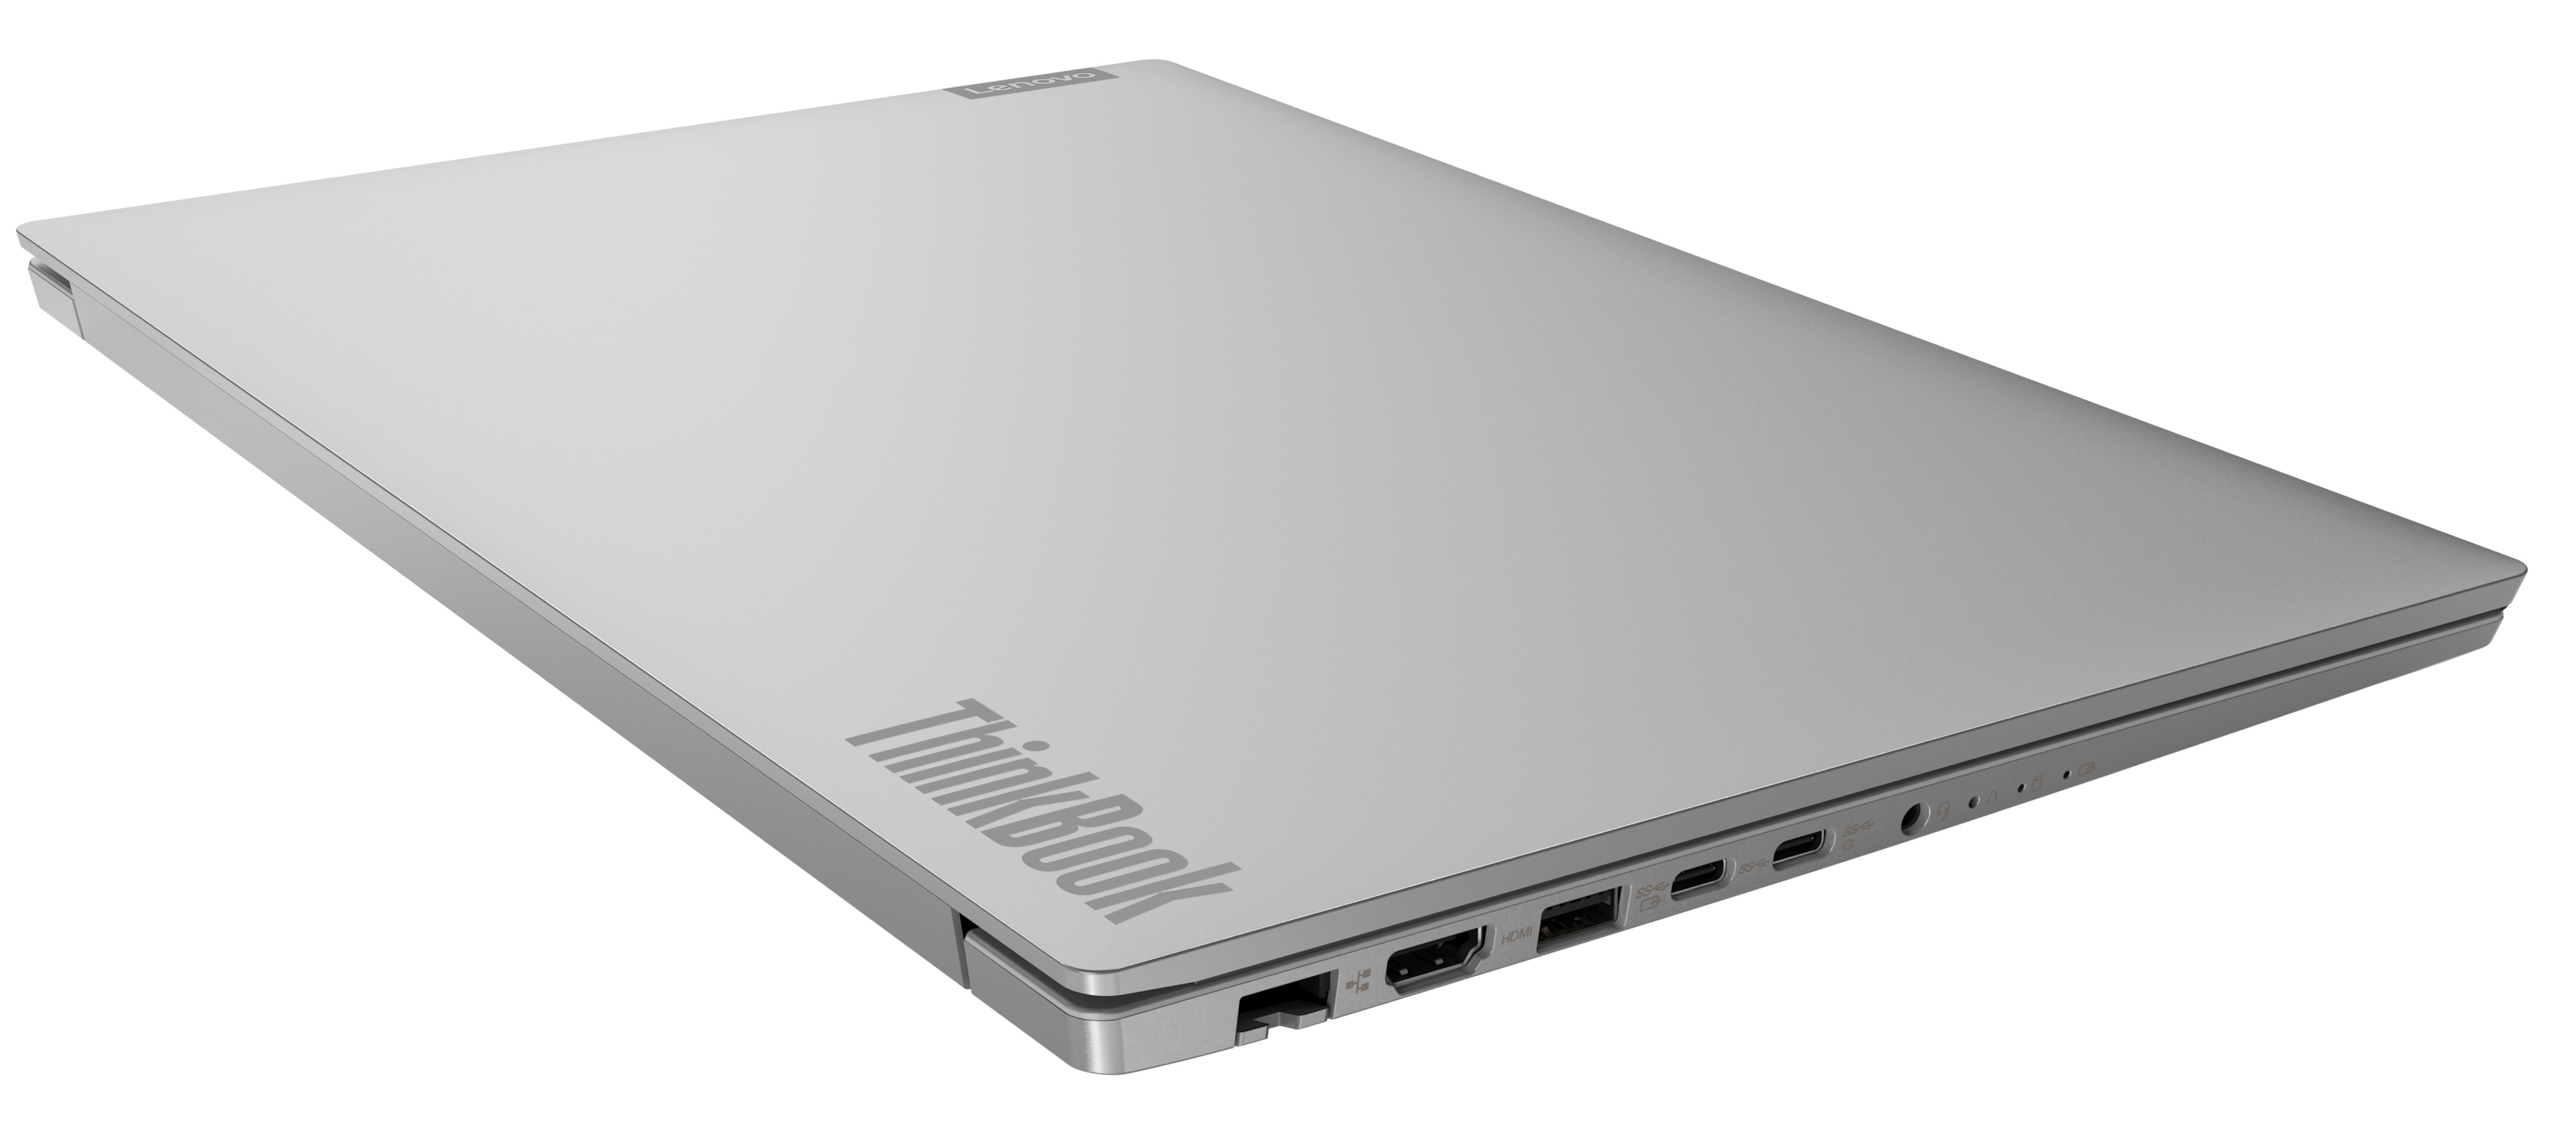 Фото  Ноутбук ThinkBook 15-IIL Mineral Grey (20SM002LRU)